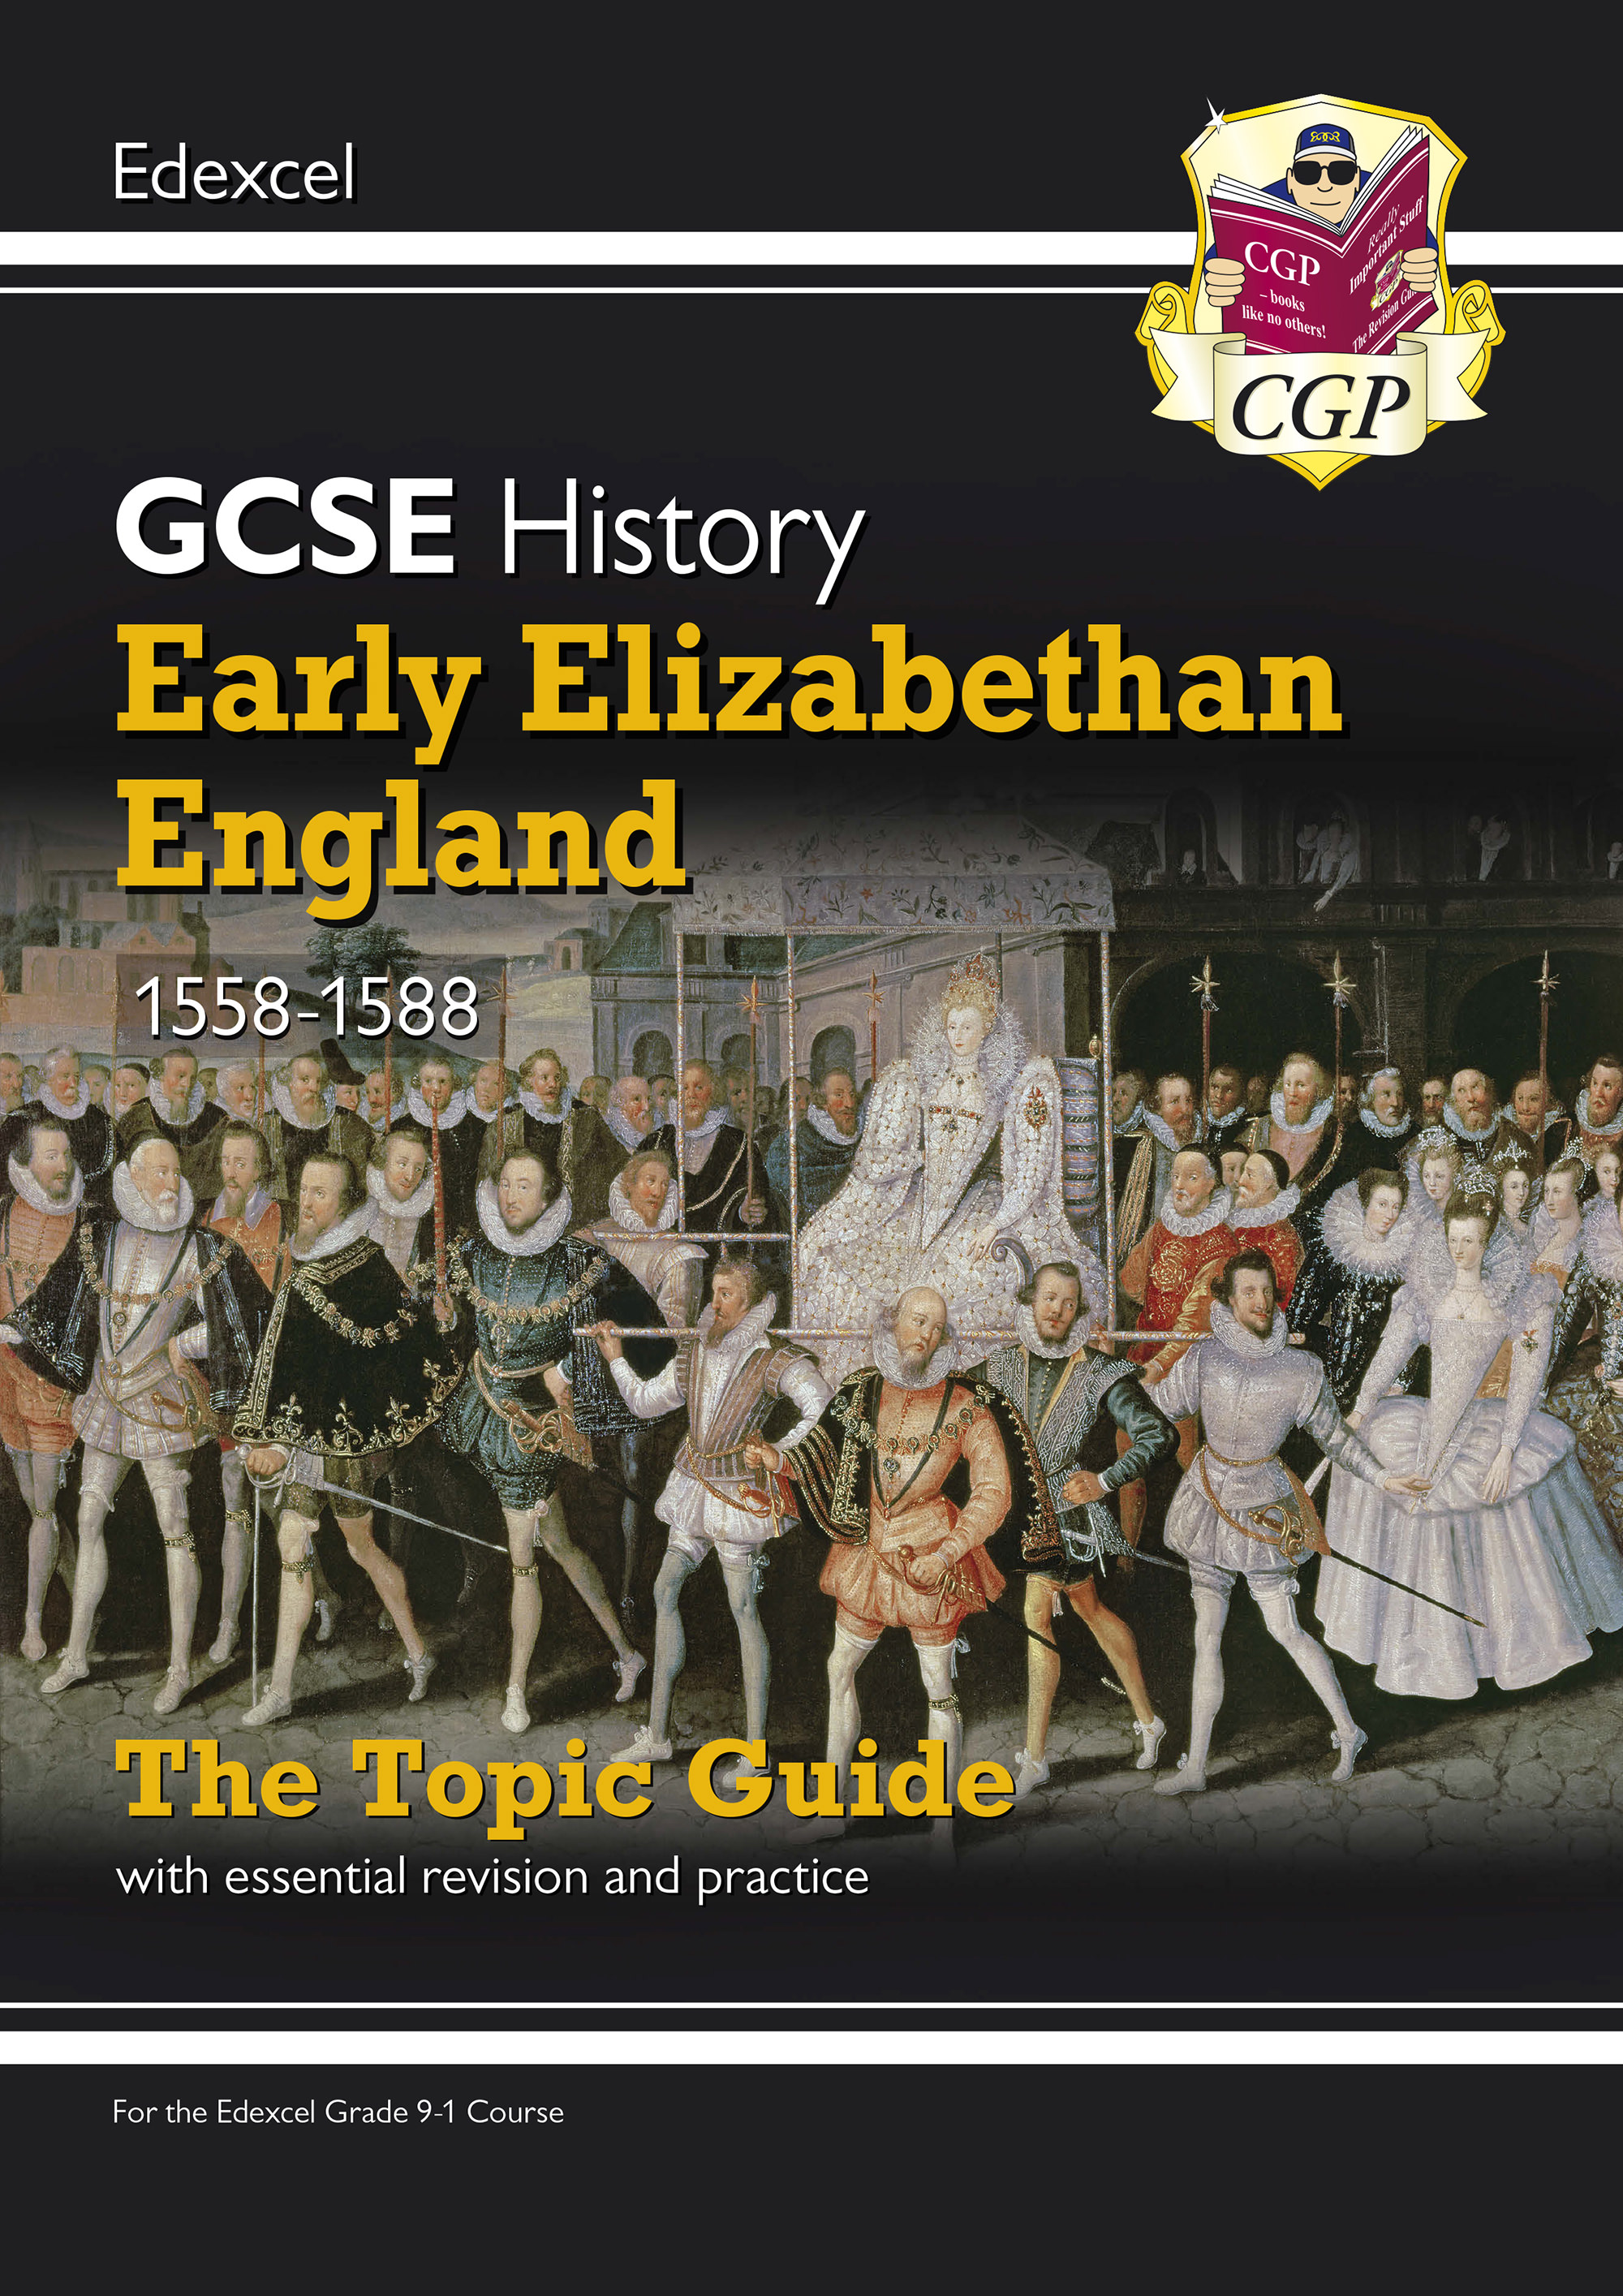 HEEAO41DK - New Grade 9-1 GCSE History Edexcel Topic Guide - Early Elizabethan England, 1558-88